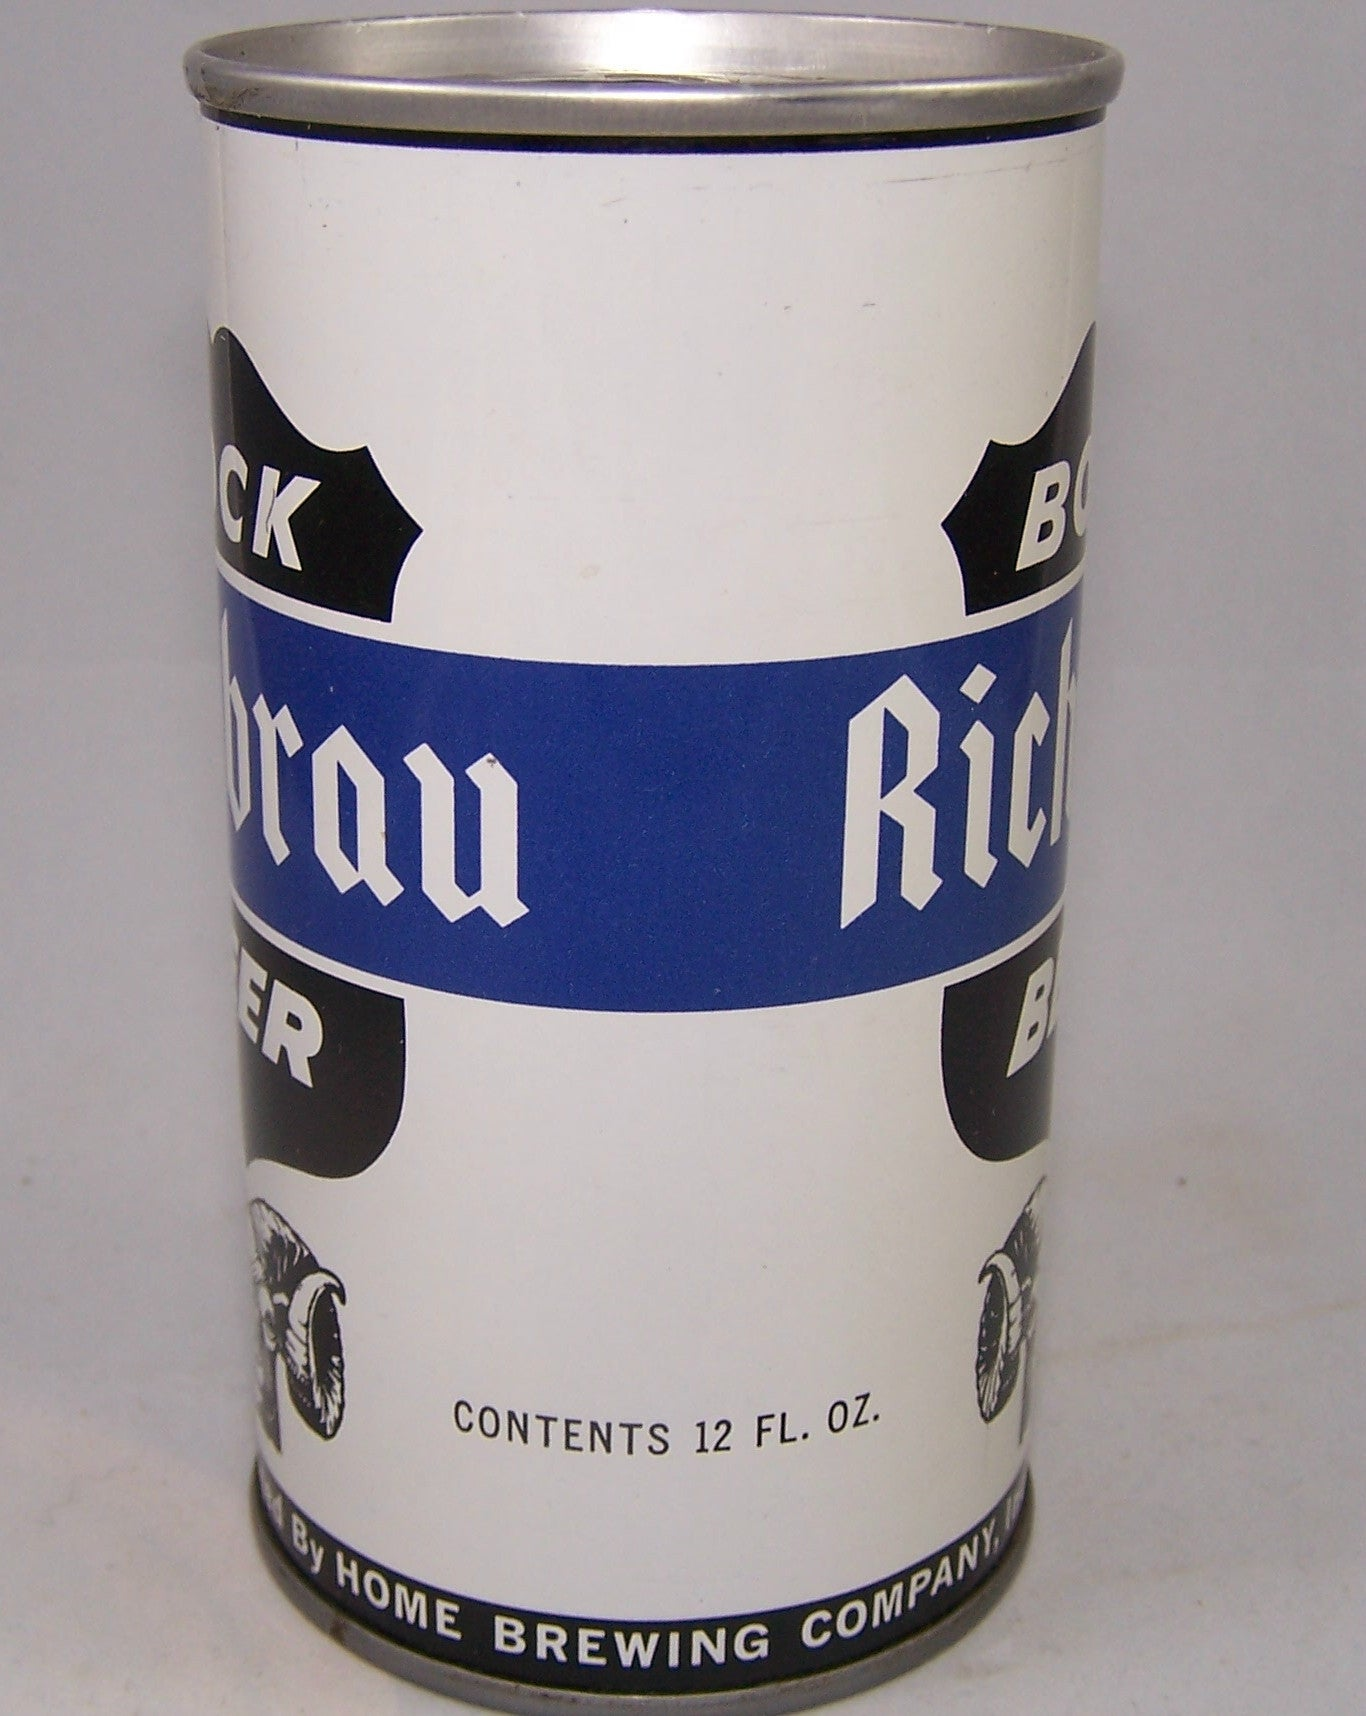 Richbrau Bock Beer, USBC II 116-09, Grade A1+ Sold on 10/17/15